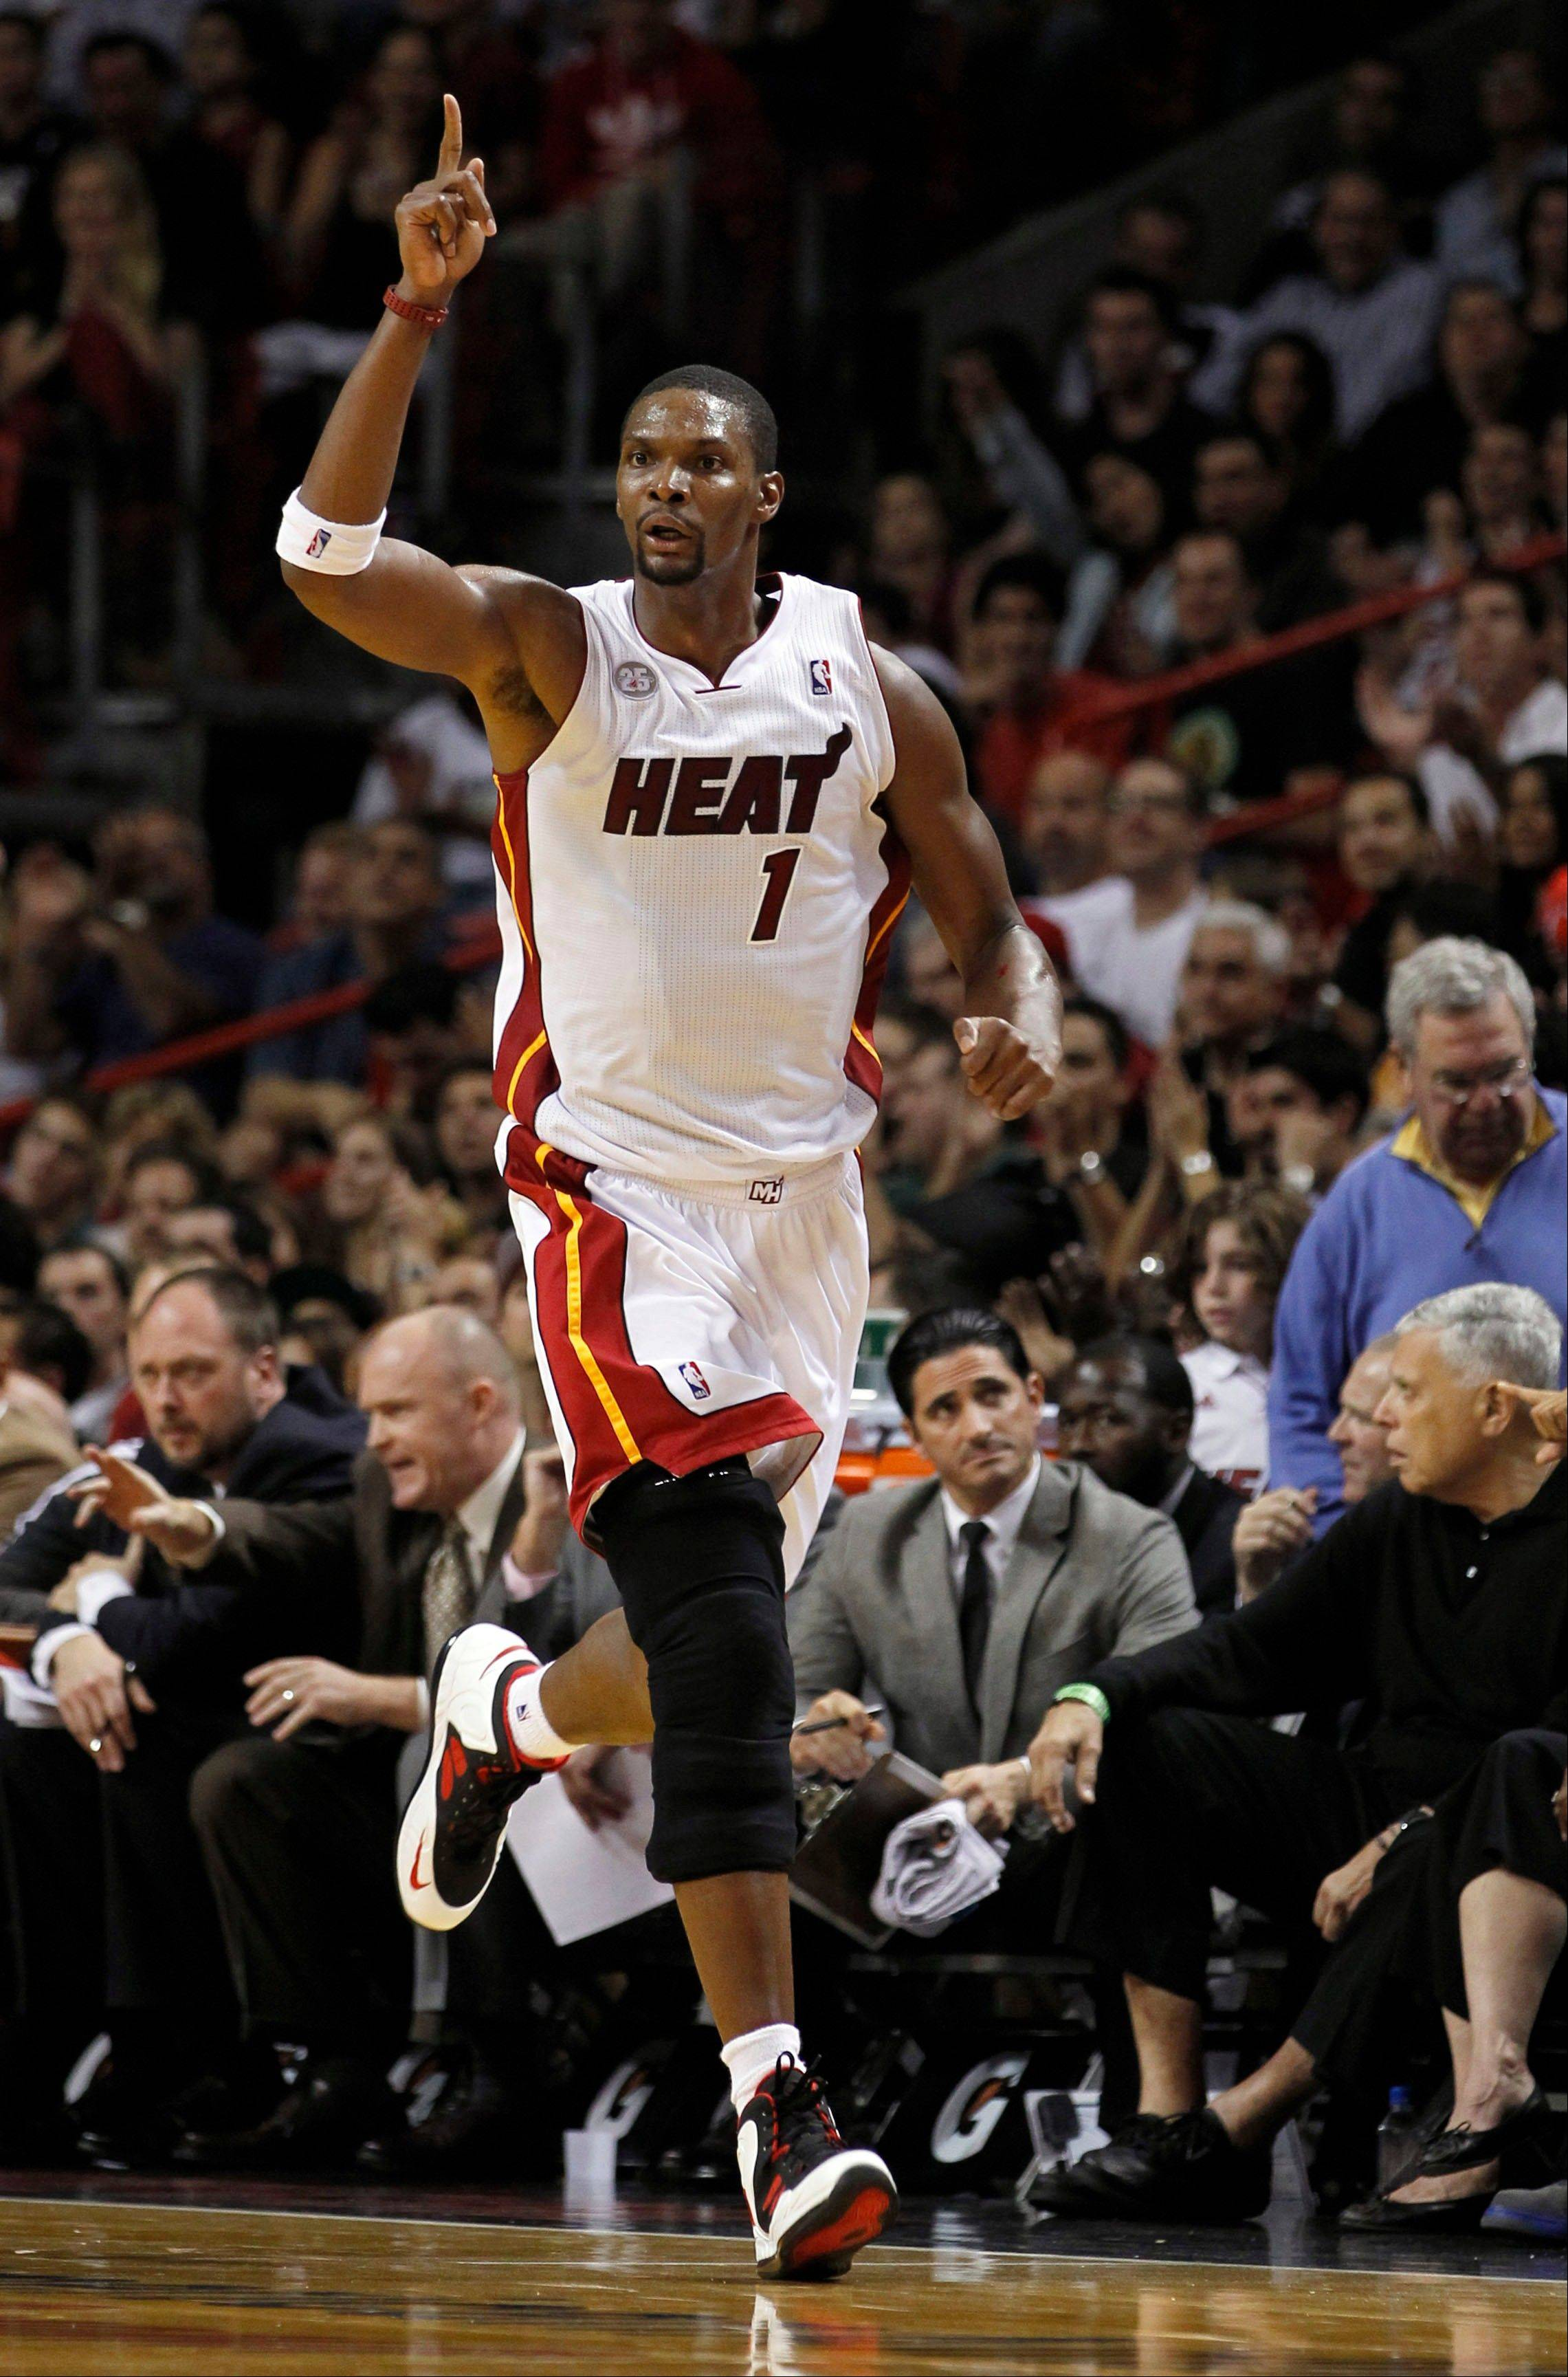 Miami�s Chris Bosh celebrates after scoring a 3-pointer in the second half Wednesday at home against the Milwaukee Bucks. Bosh scored 28 points and had 18 rebounds, his most in a Heat uniform.